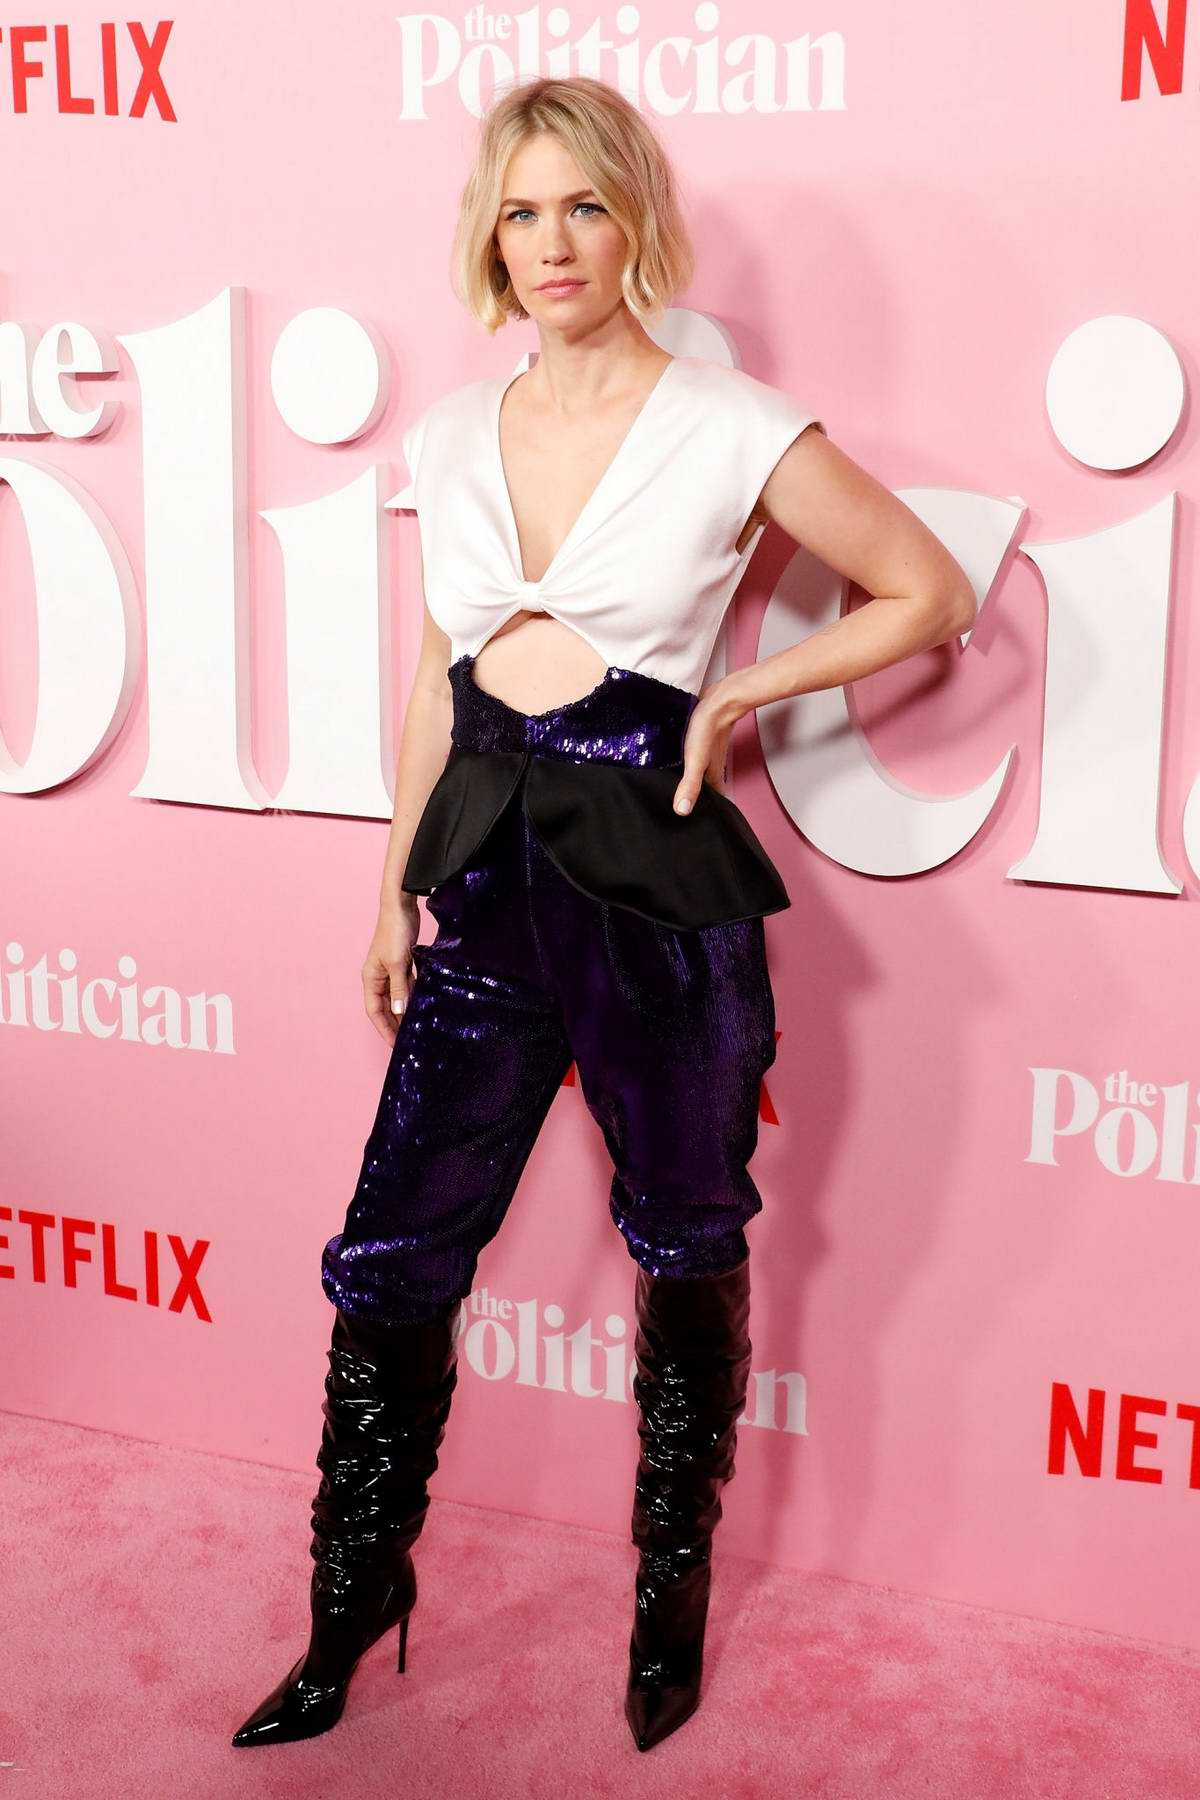 January Jones Attends 'The Politician' Premiere At The DGA